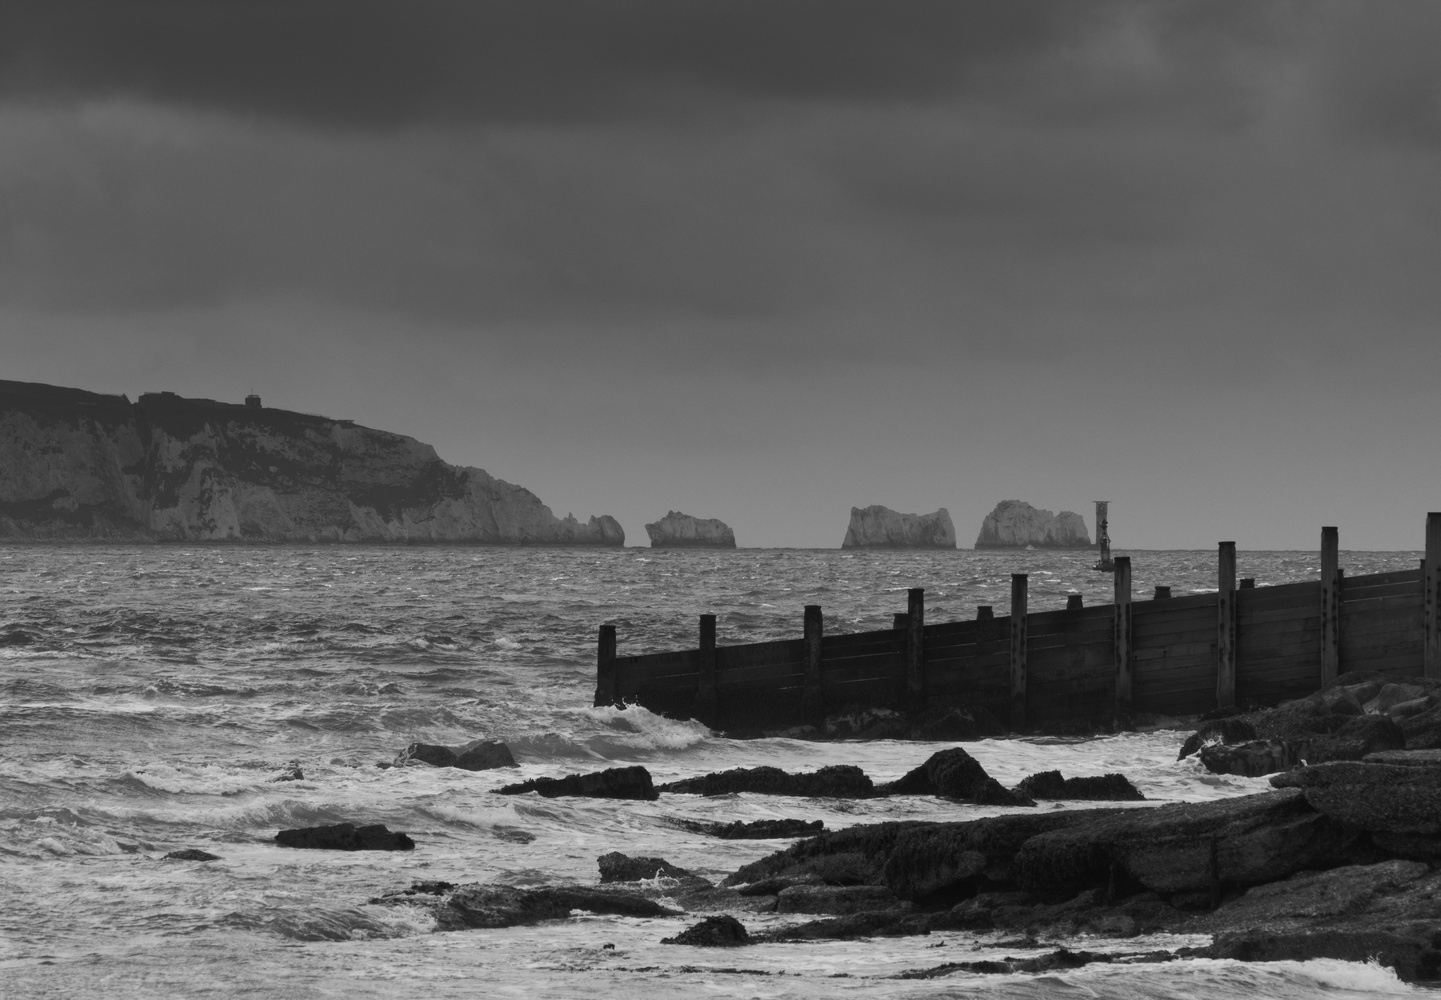 The Needles, Isle of Wight, England's South coast by Mike Young